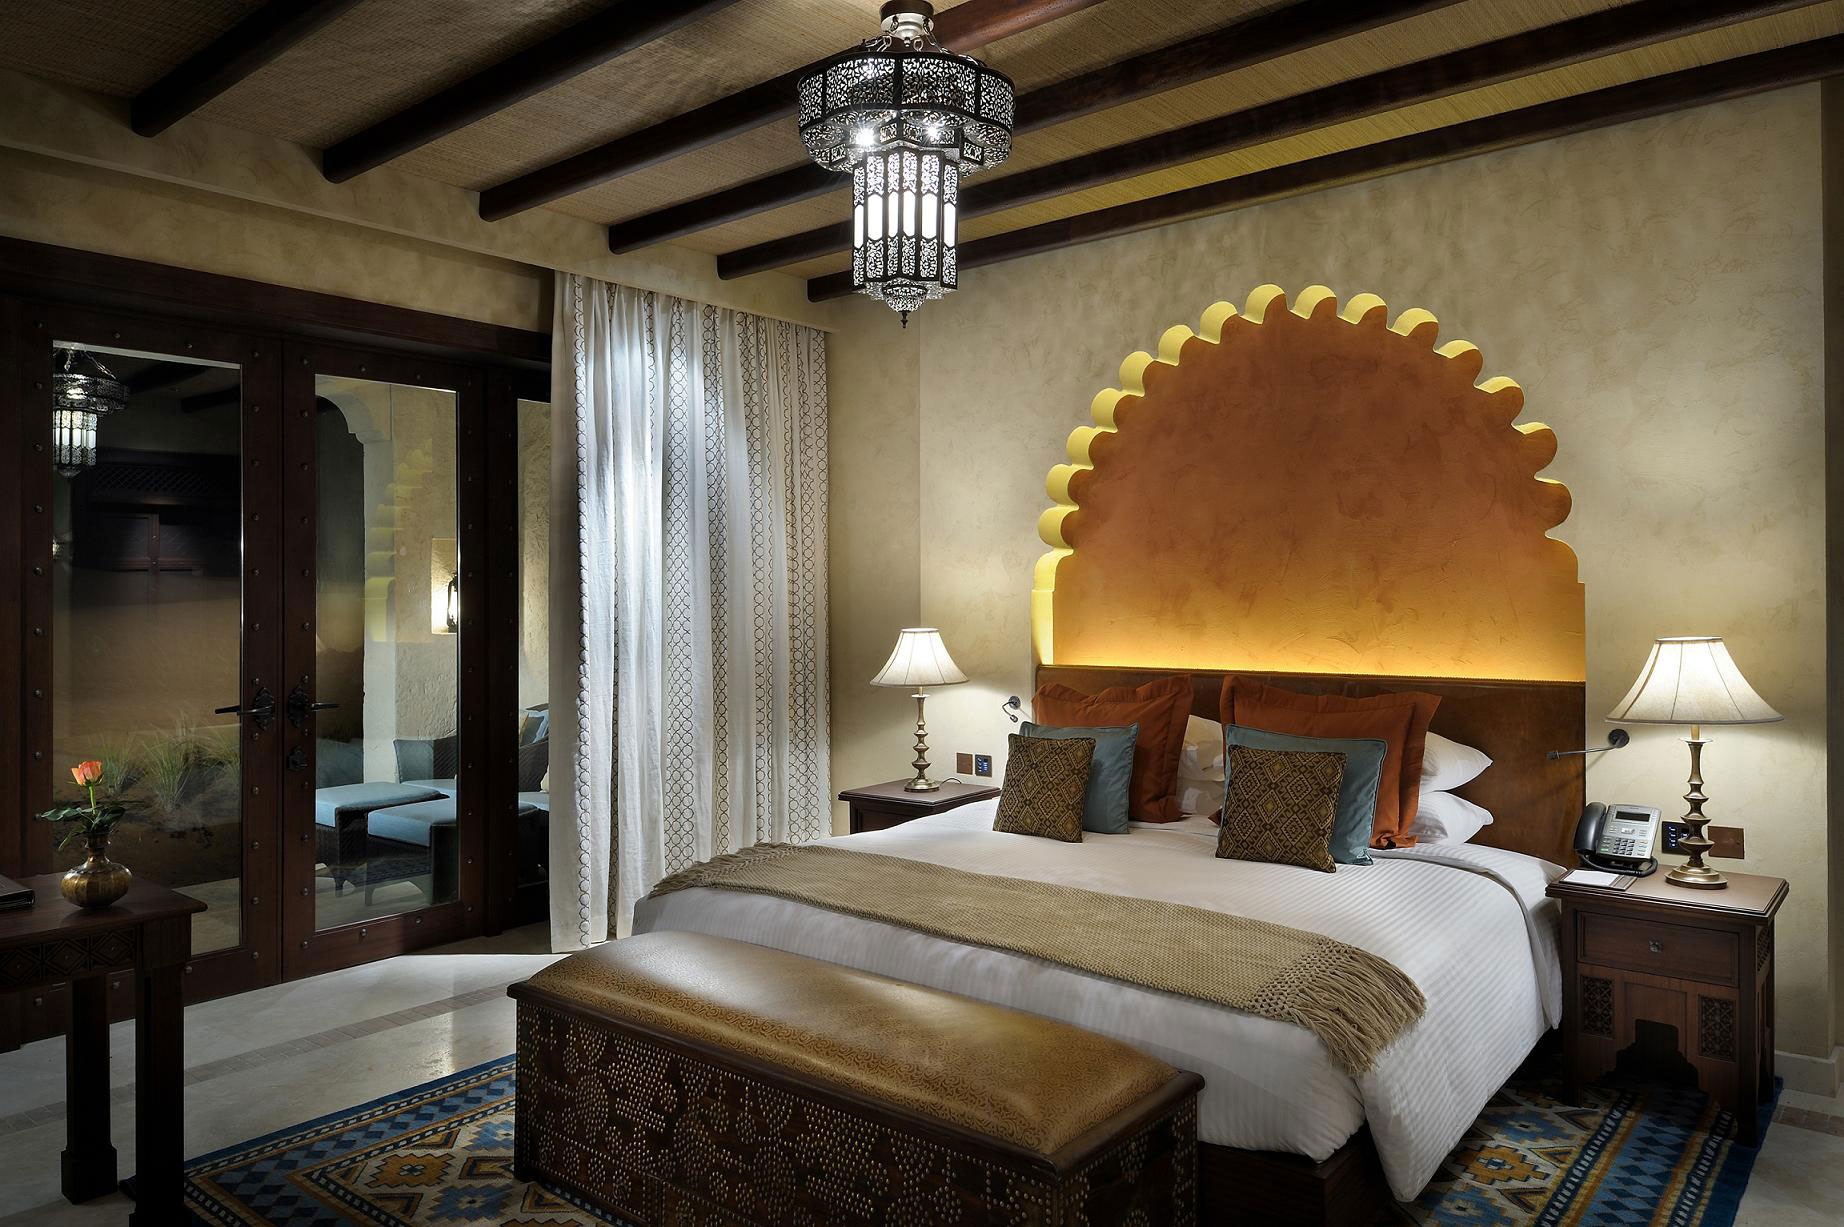 Middle Eastern Bedroom Decor Arabic Interior Design Decor Ideas And Photos